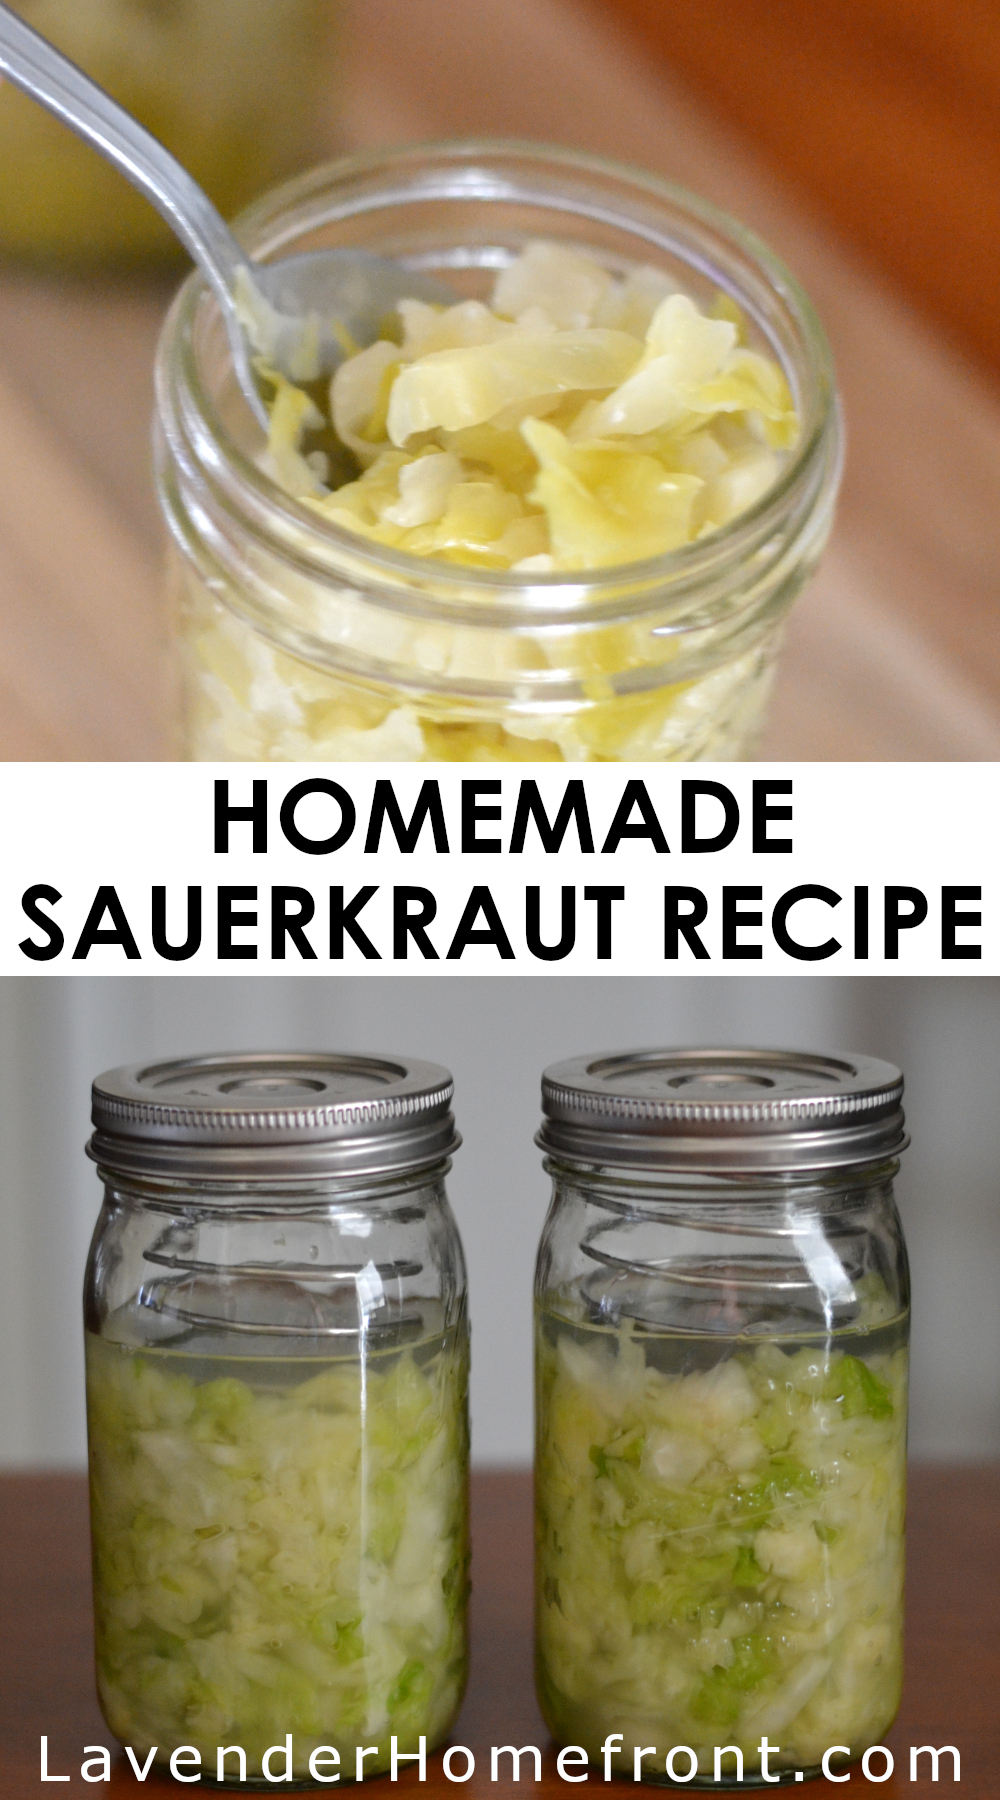 How to make sauerkraut pinnable image with text overlay.